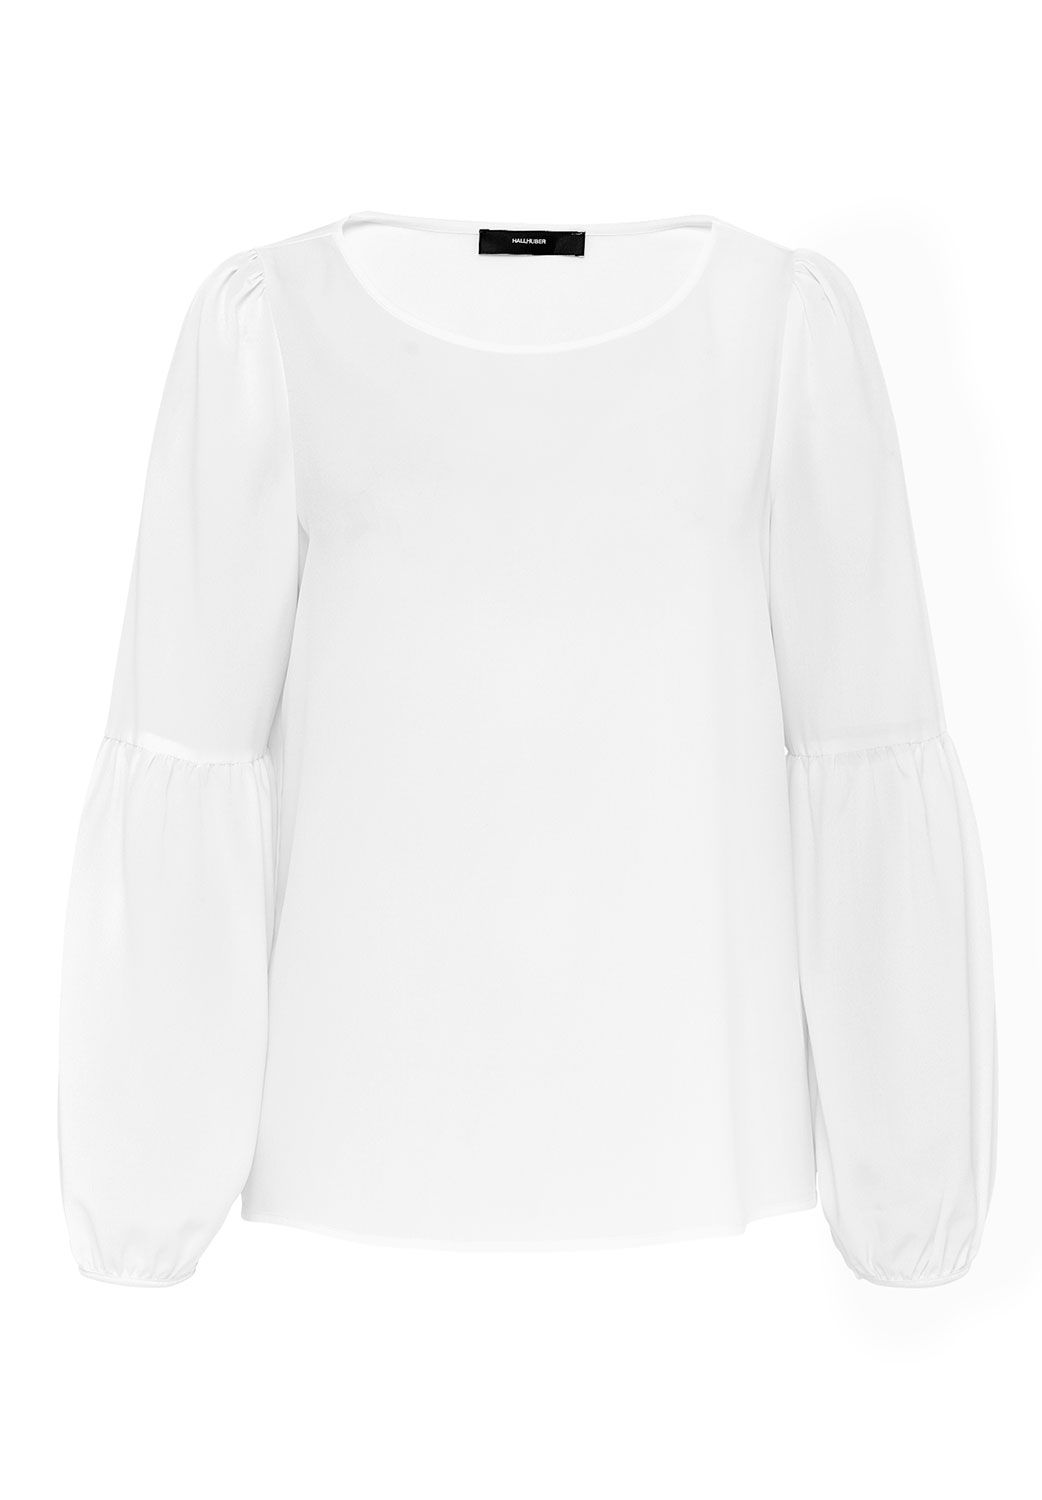 Hallhuber Blouse With Bell Sleeves, Off White